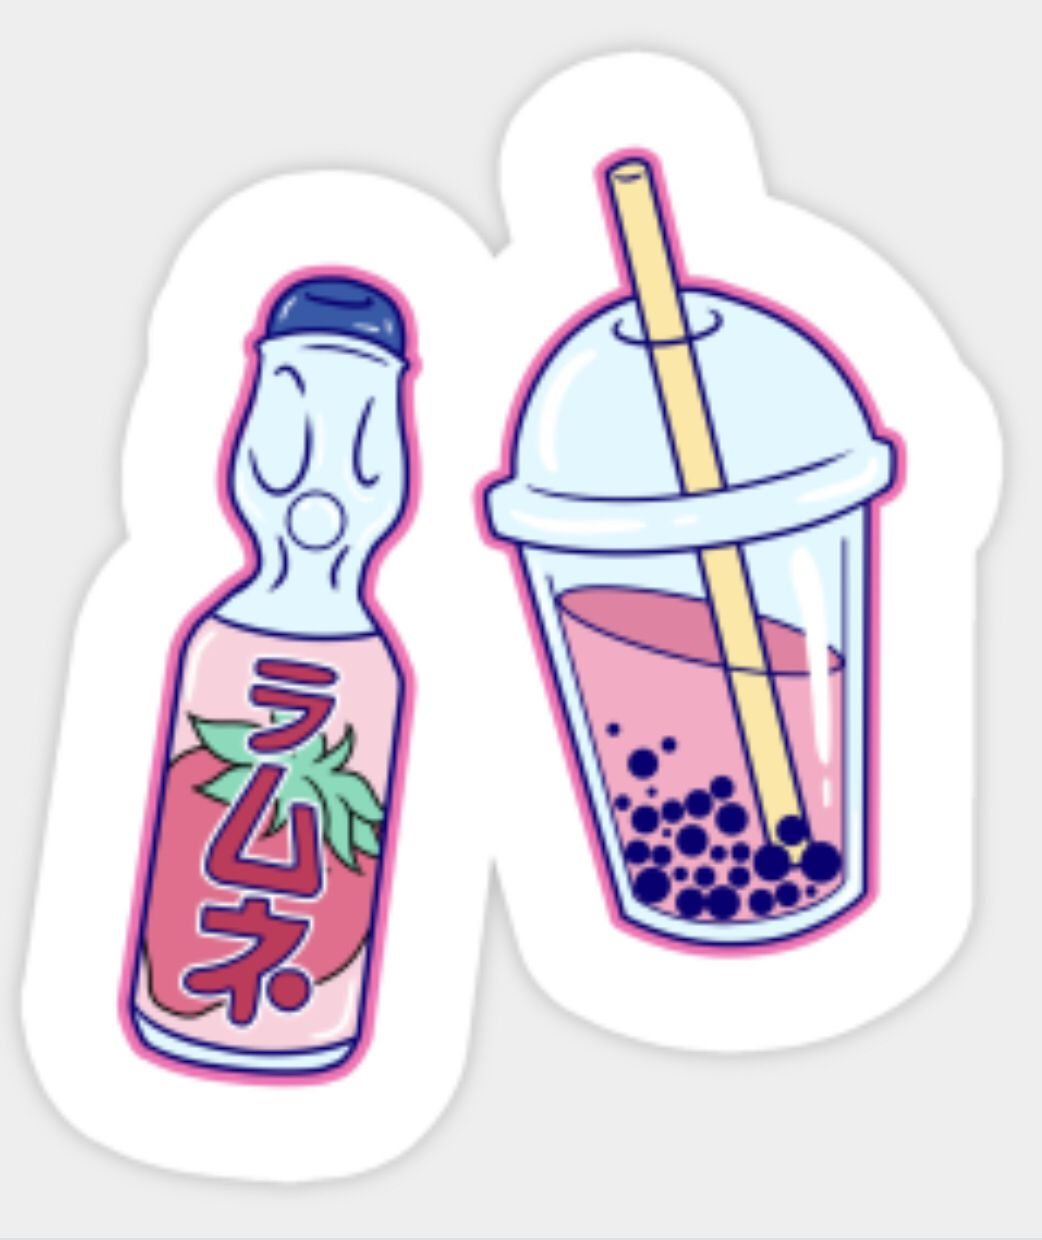 Ramune and boba tea 🍵 💞💖💗 snapchat stickers phone stickers macbook stickers